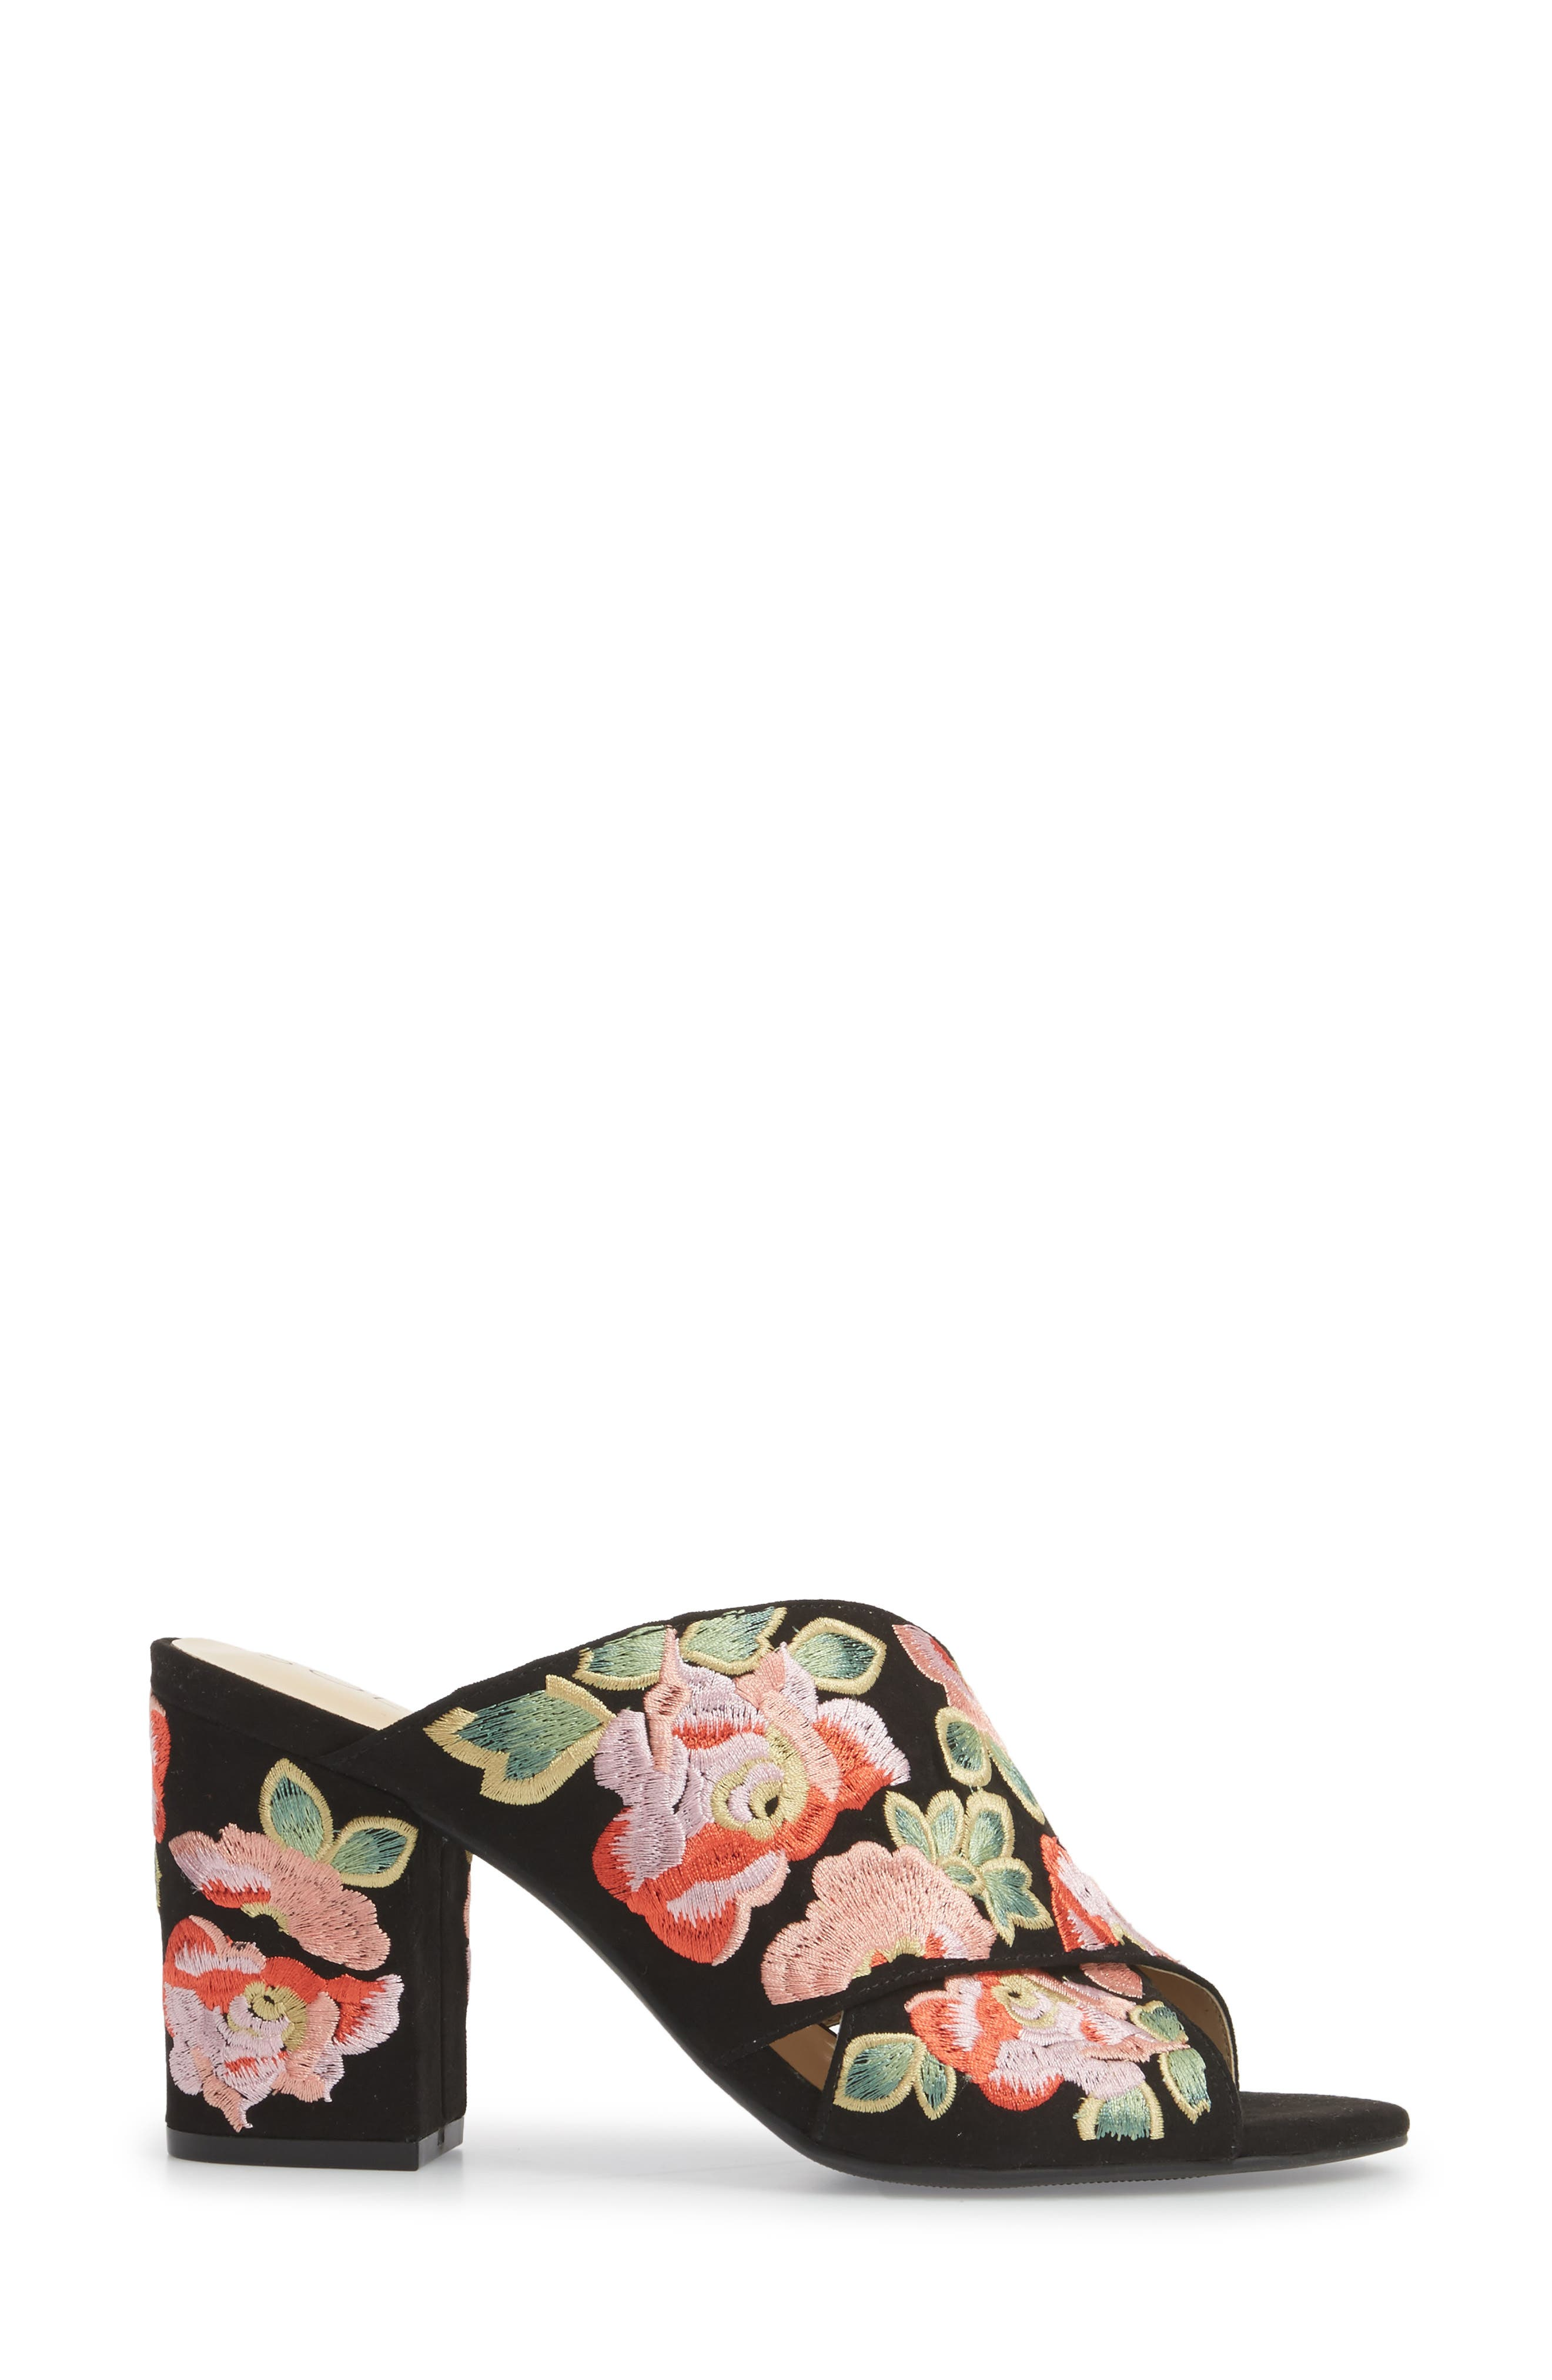 Luella Flower Embroidered Slide,                             Alternate thumbnail 3, color,                             Black/ Coral Multi Embroidery